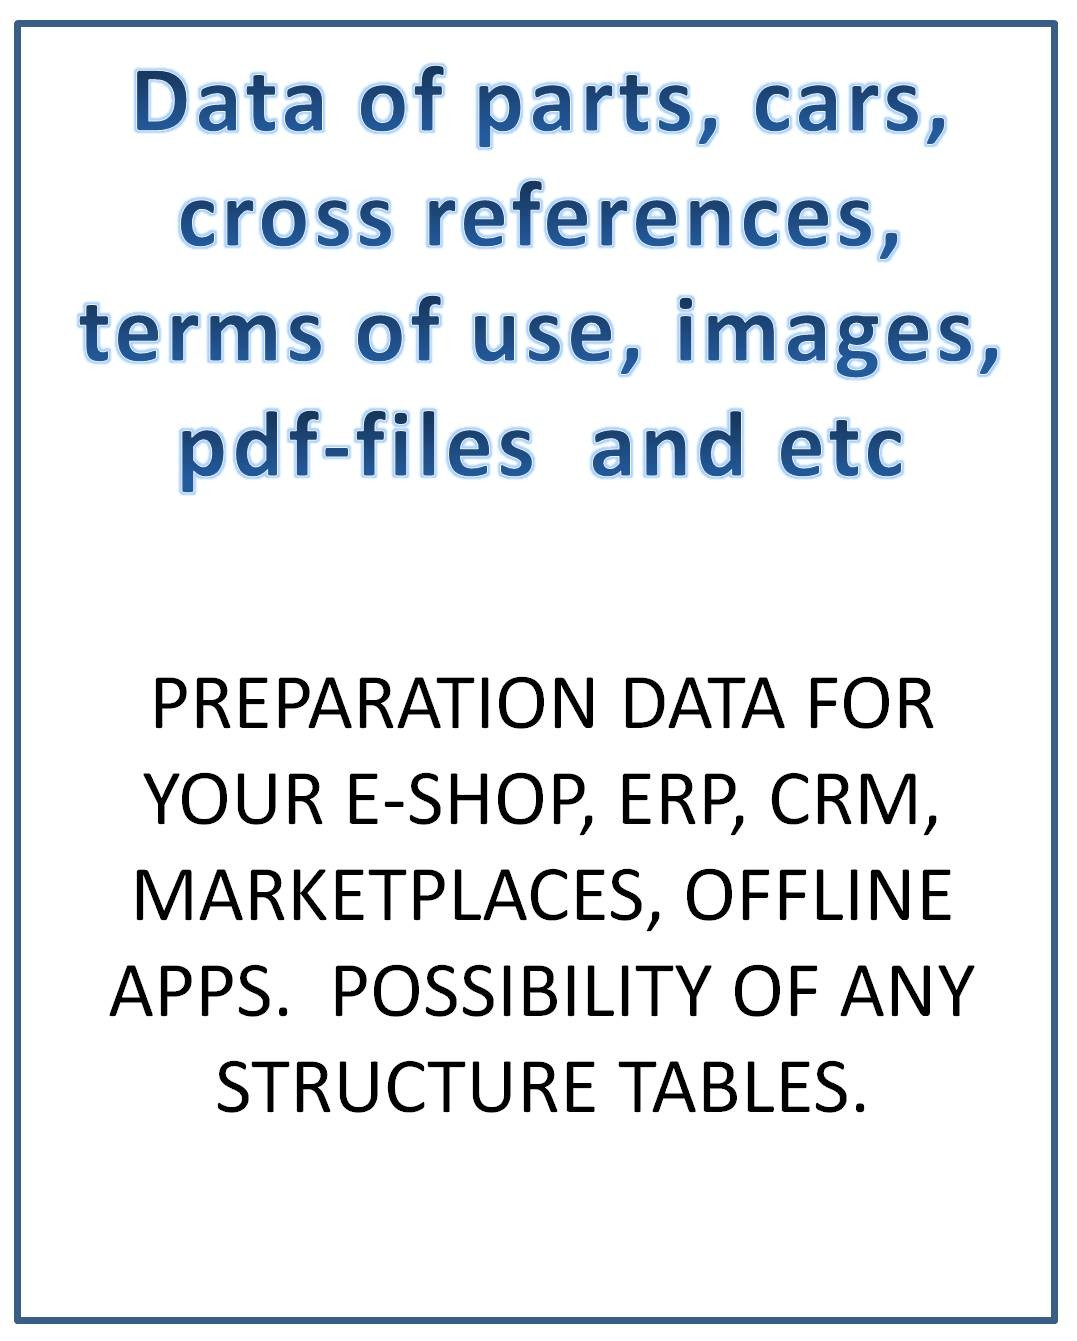 Preparation csv tables any structure for e-shop, erp, crm